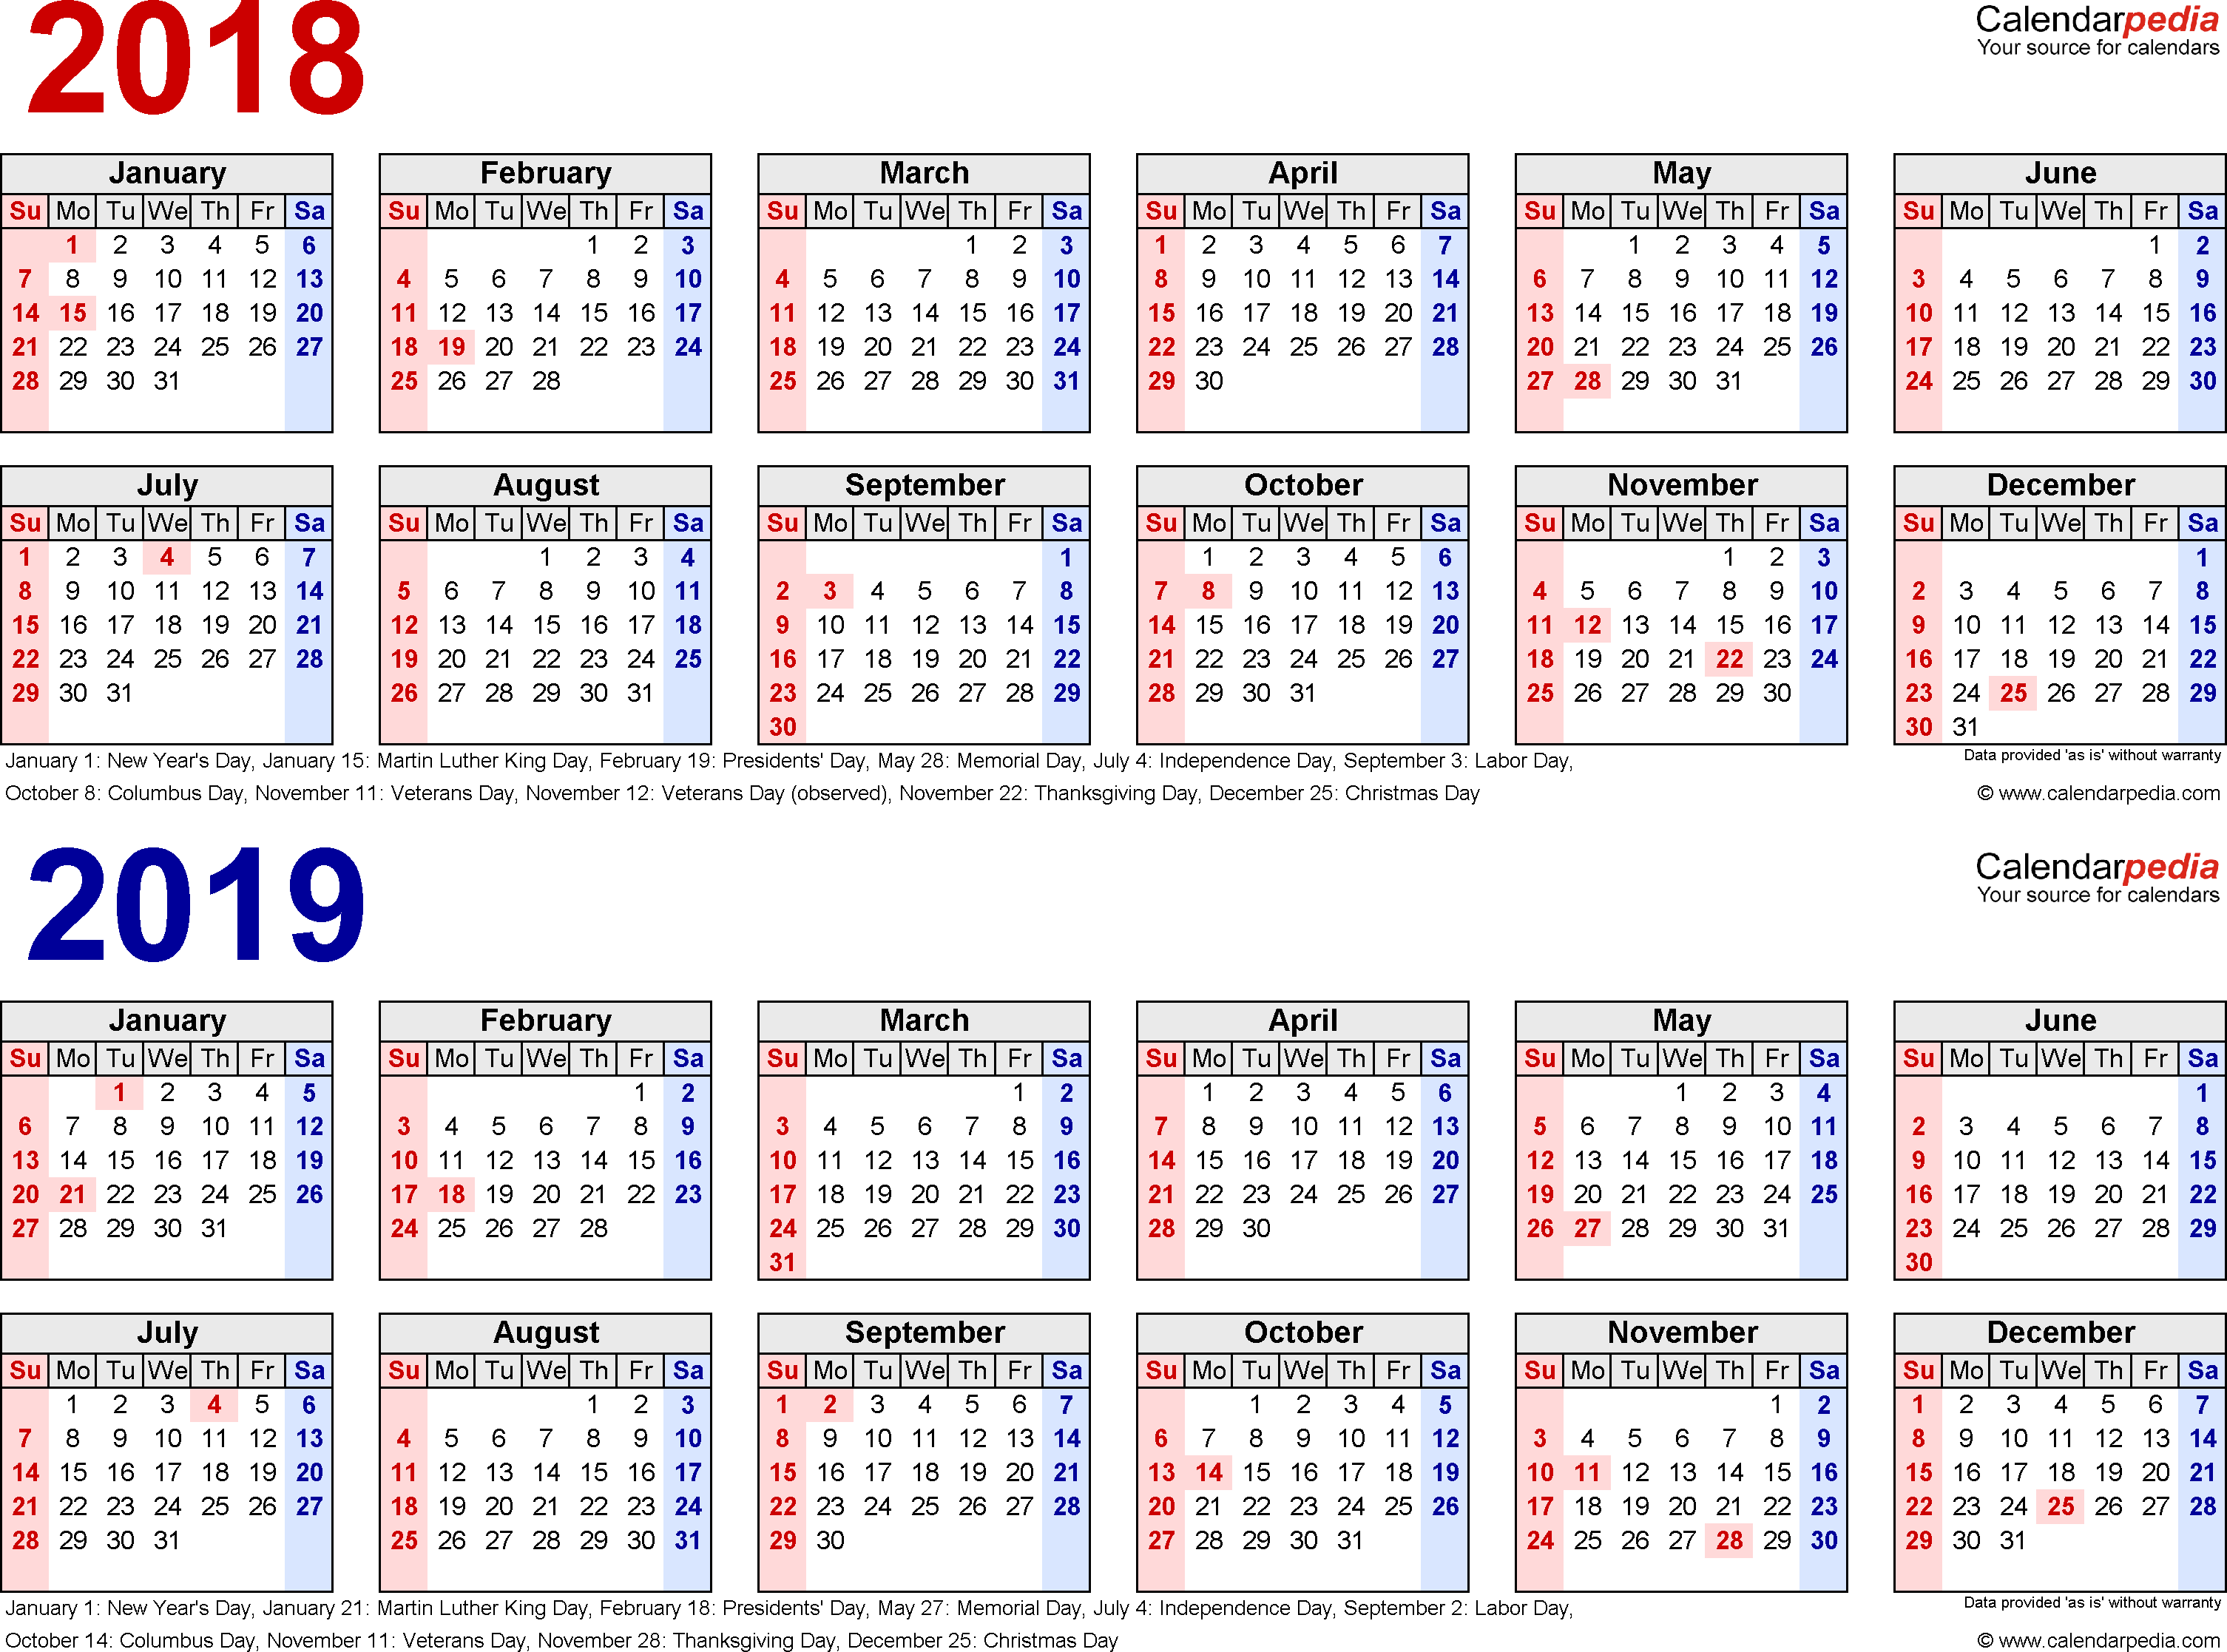 Template 1 PDF For Two Year Calendar 2018 2019 Landscape Orientation